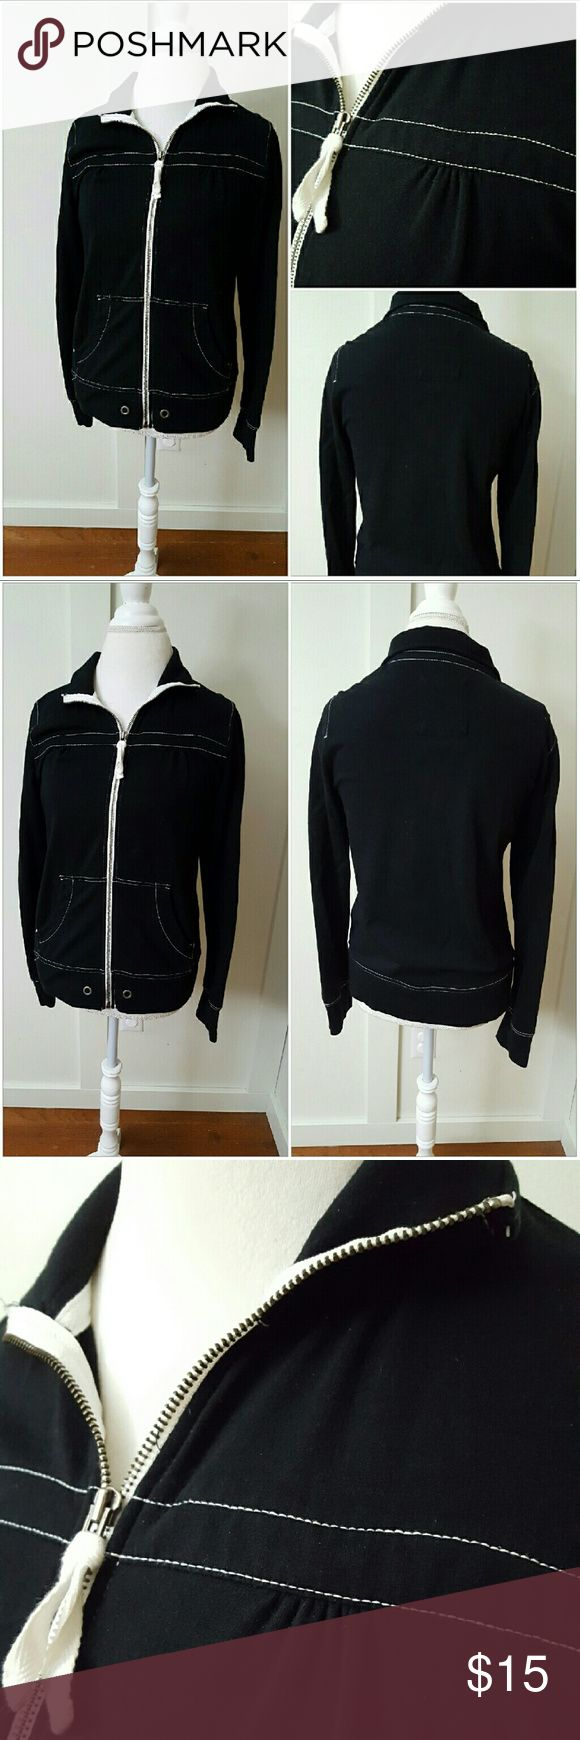 MERONA MEDIUM BLACK AND WHITE ZIP UP SWEATSHIRT Merona medium black and white sweatshirt. Zip up. Long sleeves. Pre-owned and in good condition. 97% Cotton 3% Spandex Merona Tops Sweatshirts & Hoodies